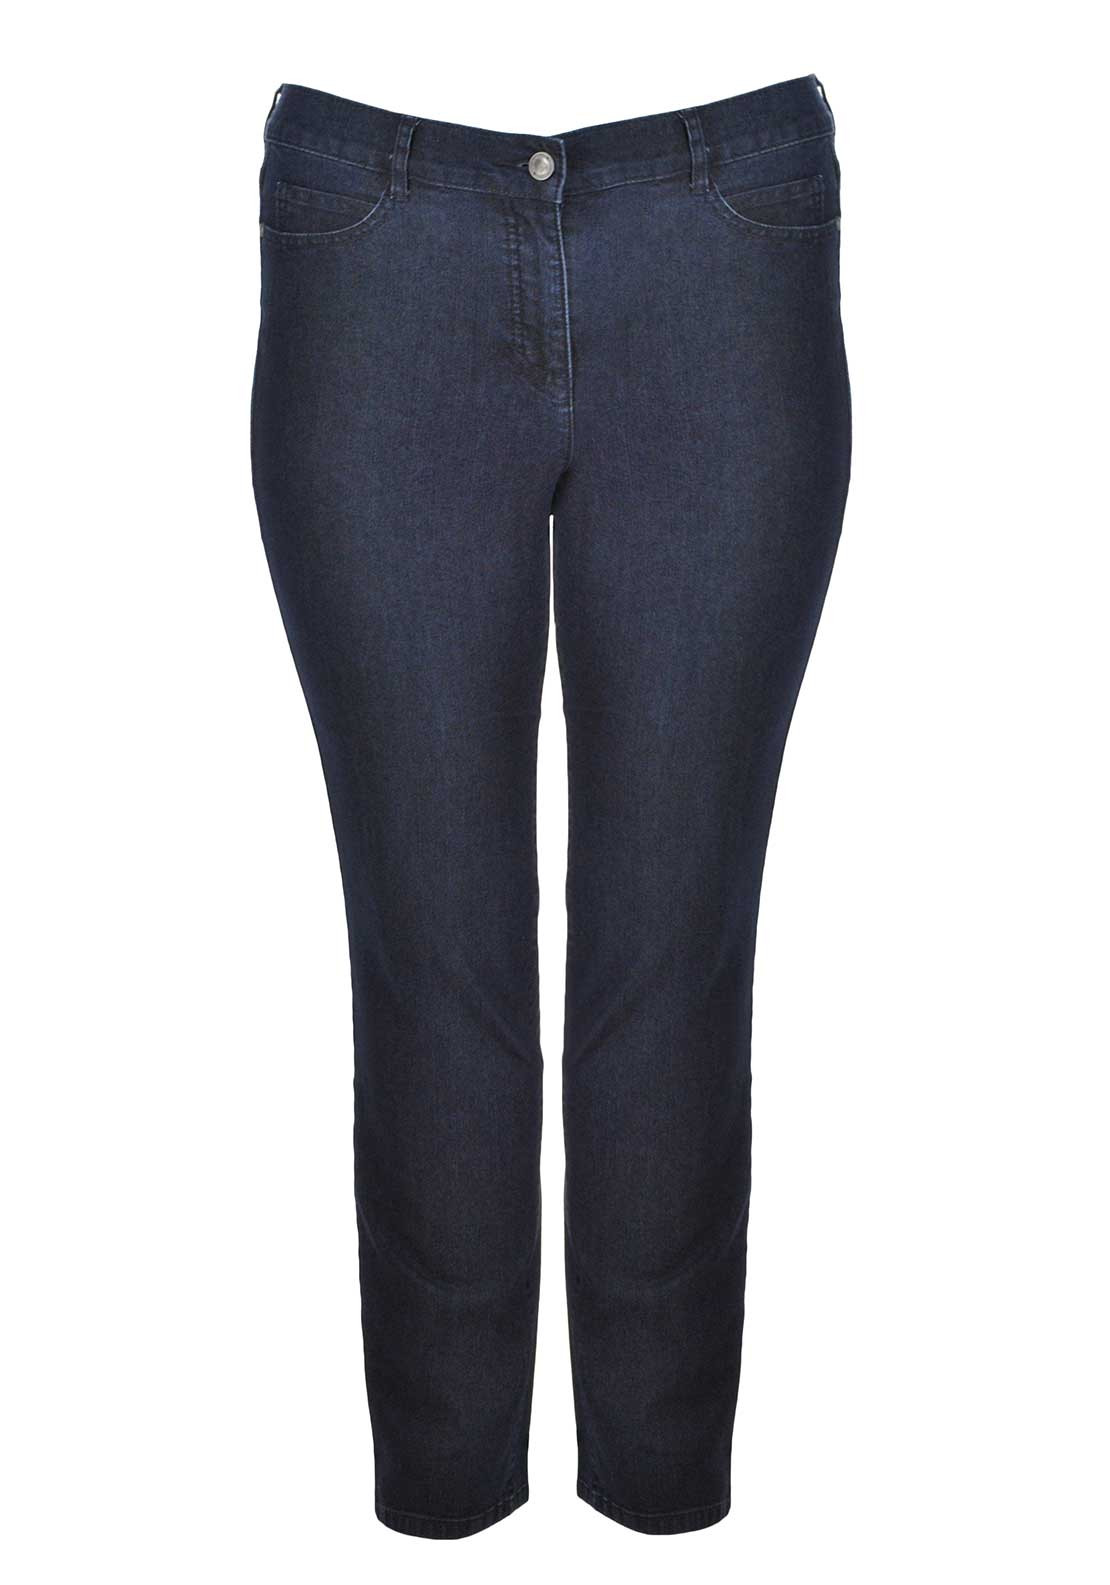 Lebek Straight Leg Jeans, Dark Blue Denim